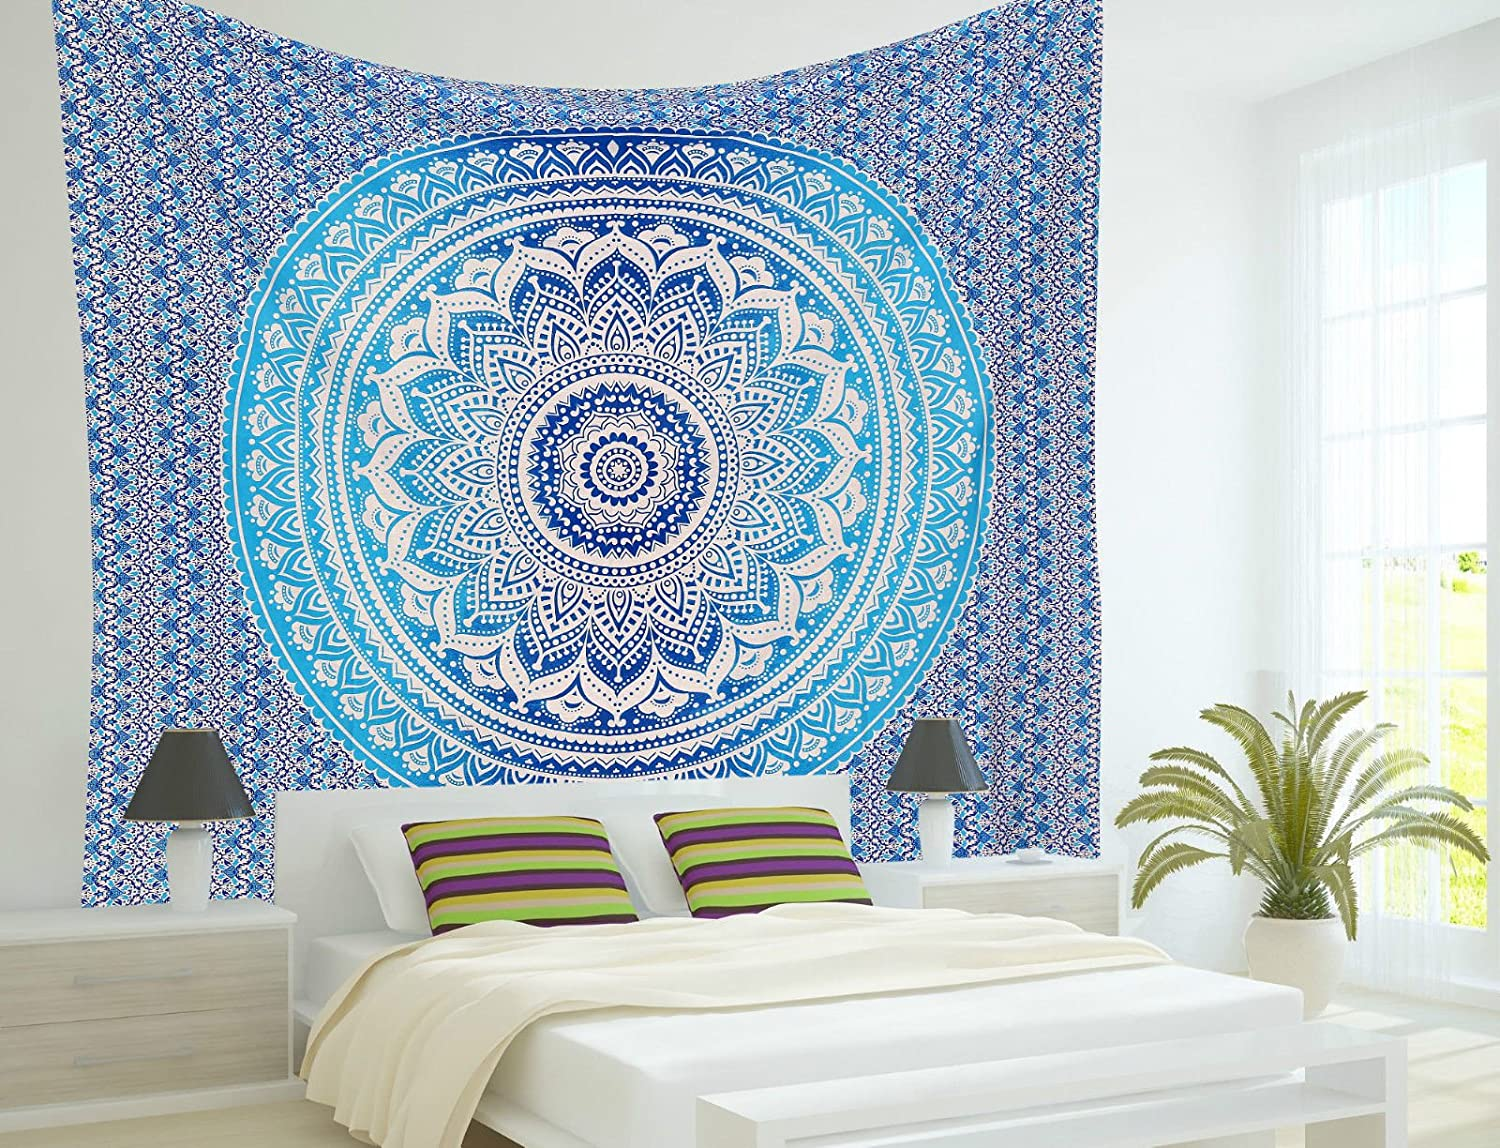 ART BOX STORE Multi Celtic Poster 30x40 Inches Mandala Hippie Tapestry Hippy Mandala Bohemian Tapestries Tapestry Wall Hanging Ethnic Decorative Indian Dorm Decor Psychedelic worldwideretailers